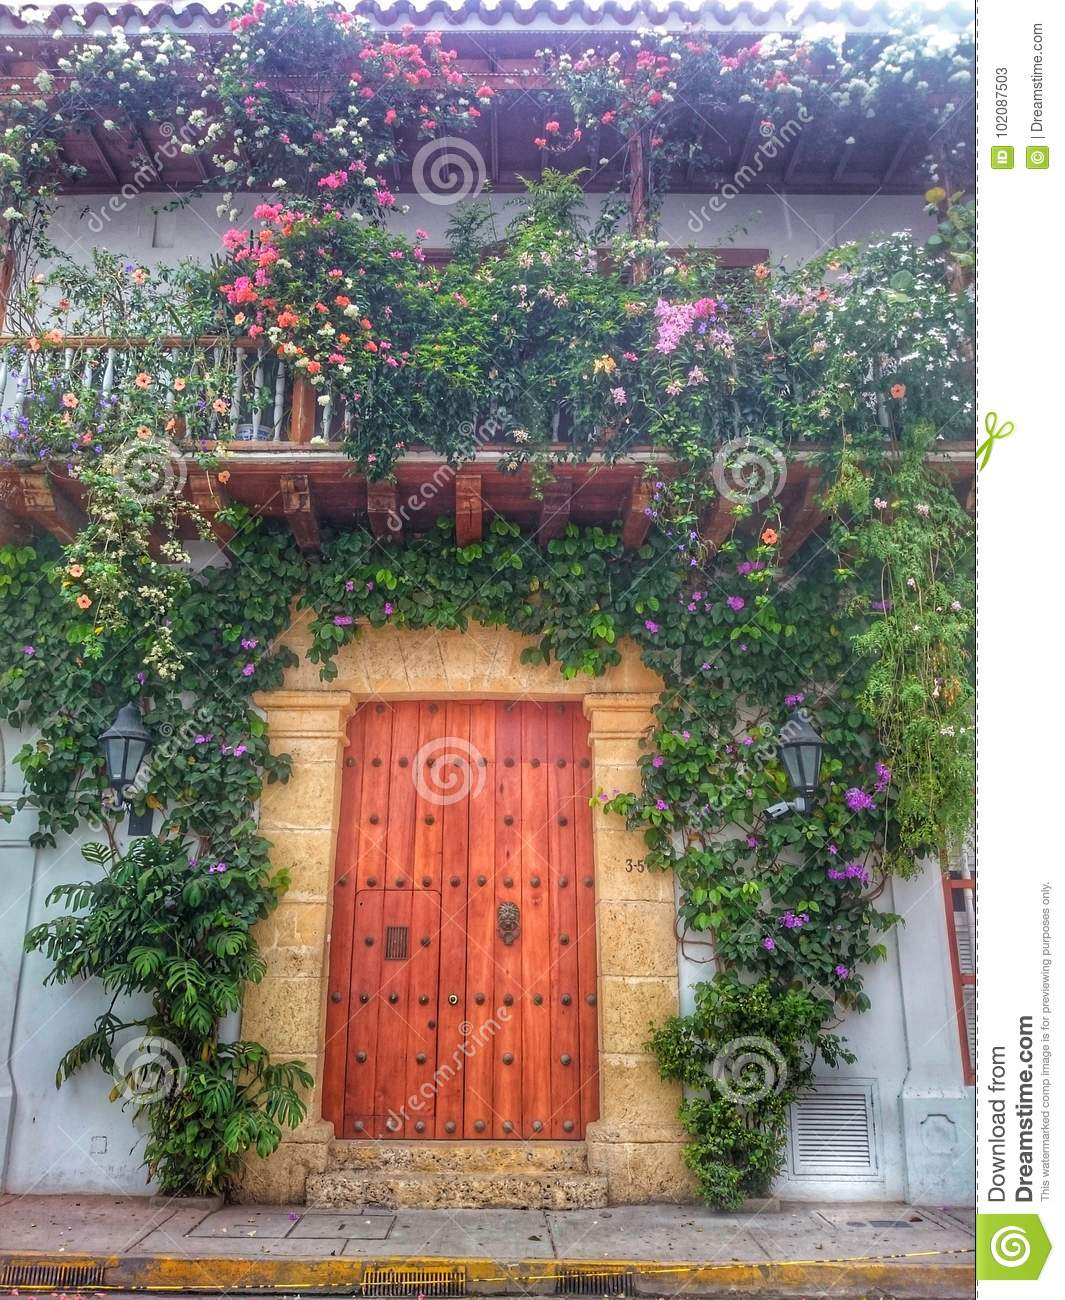 Historical House entrance with flowers and plants